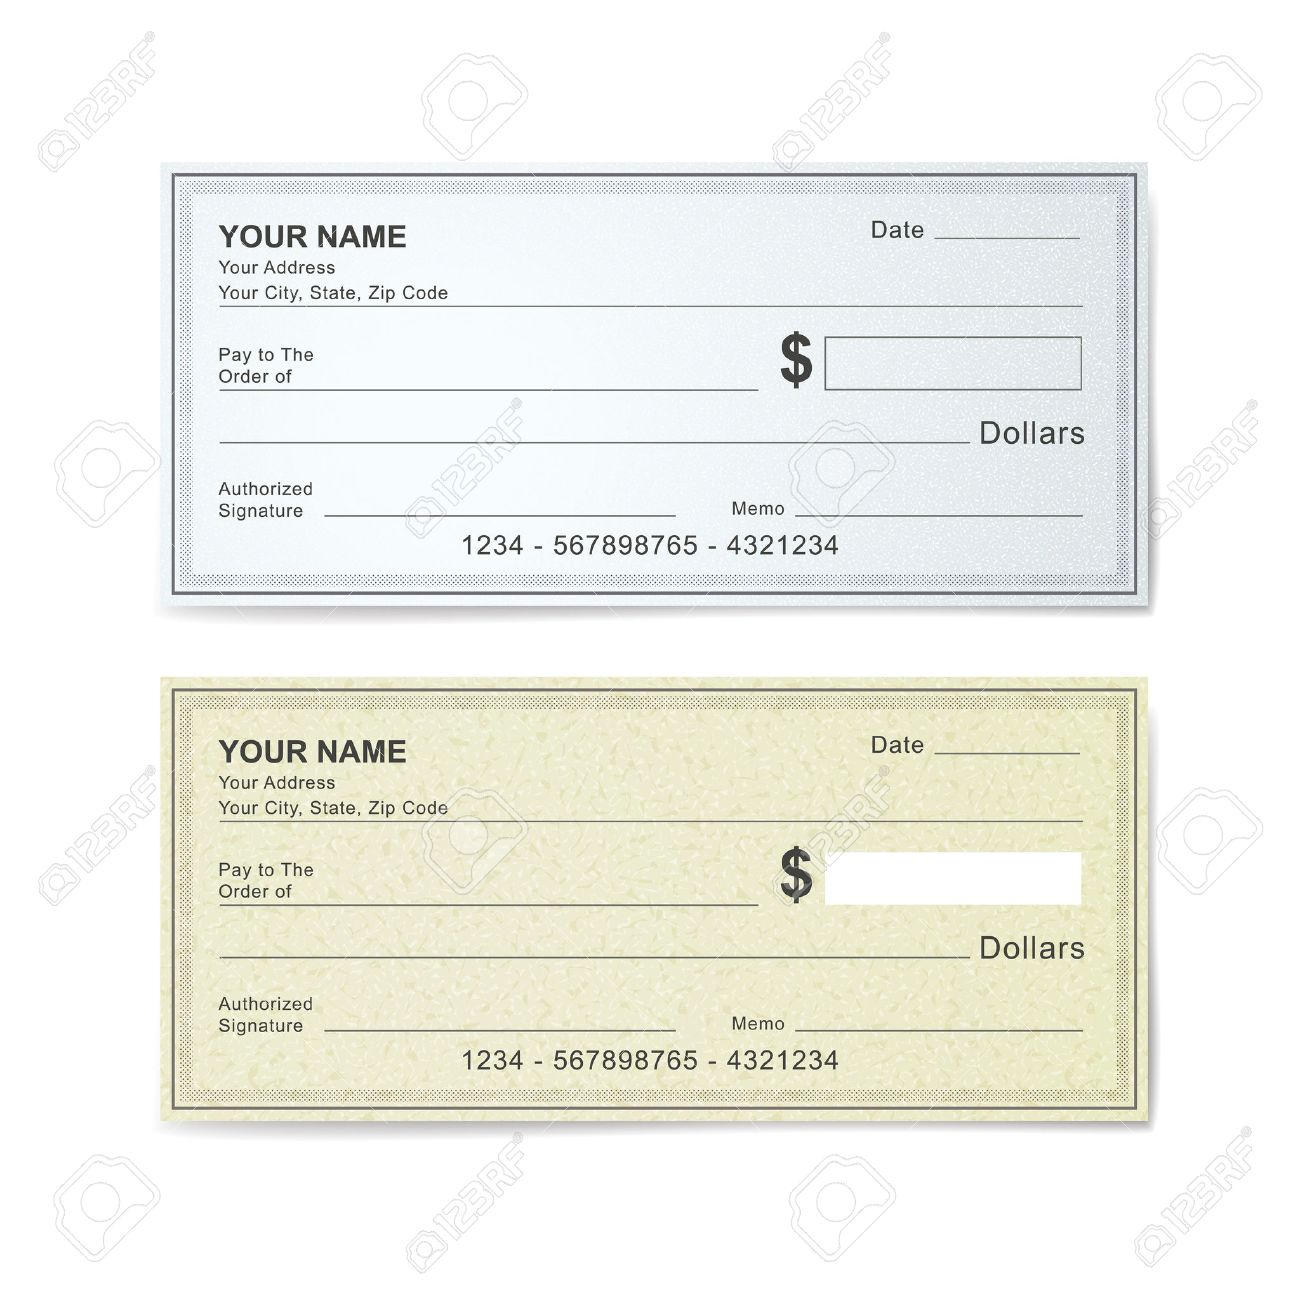 blank bank check template isolated on white royalty free cliparts